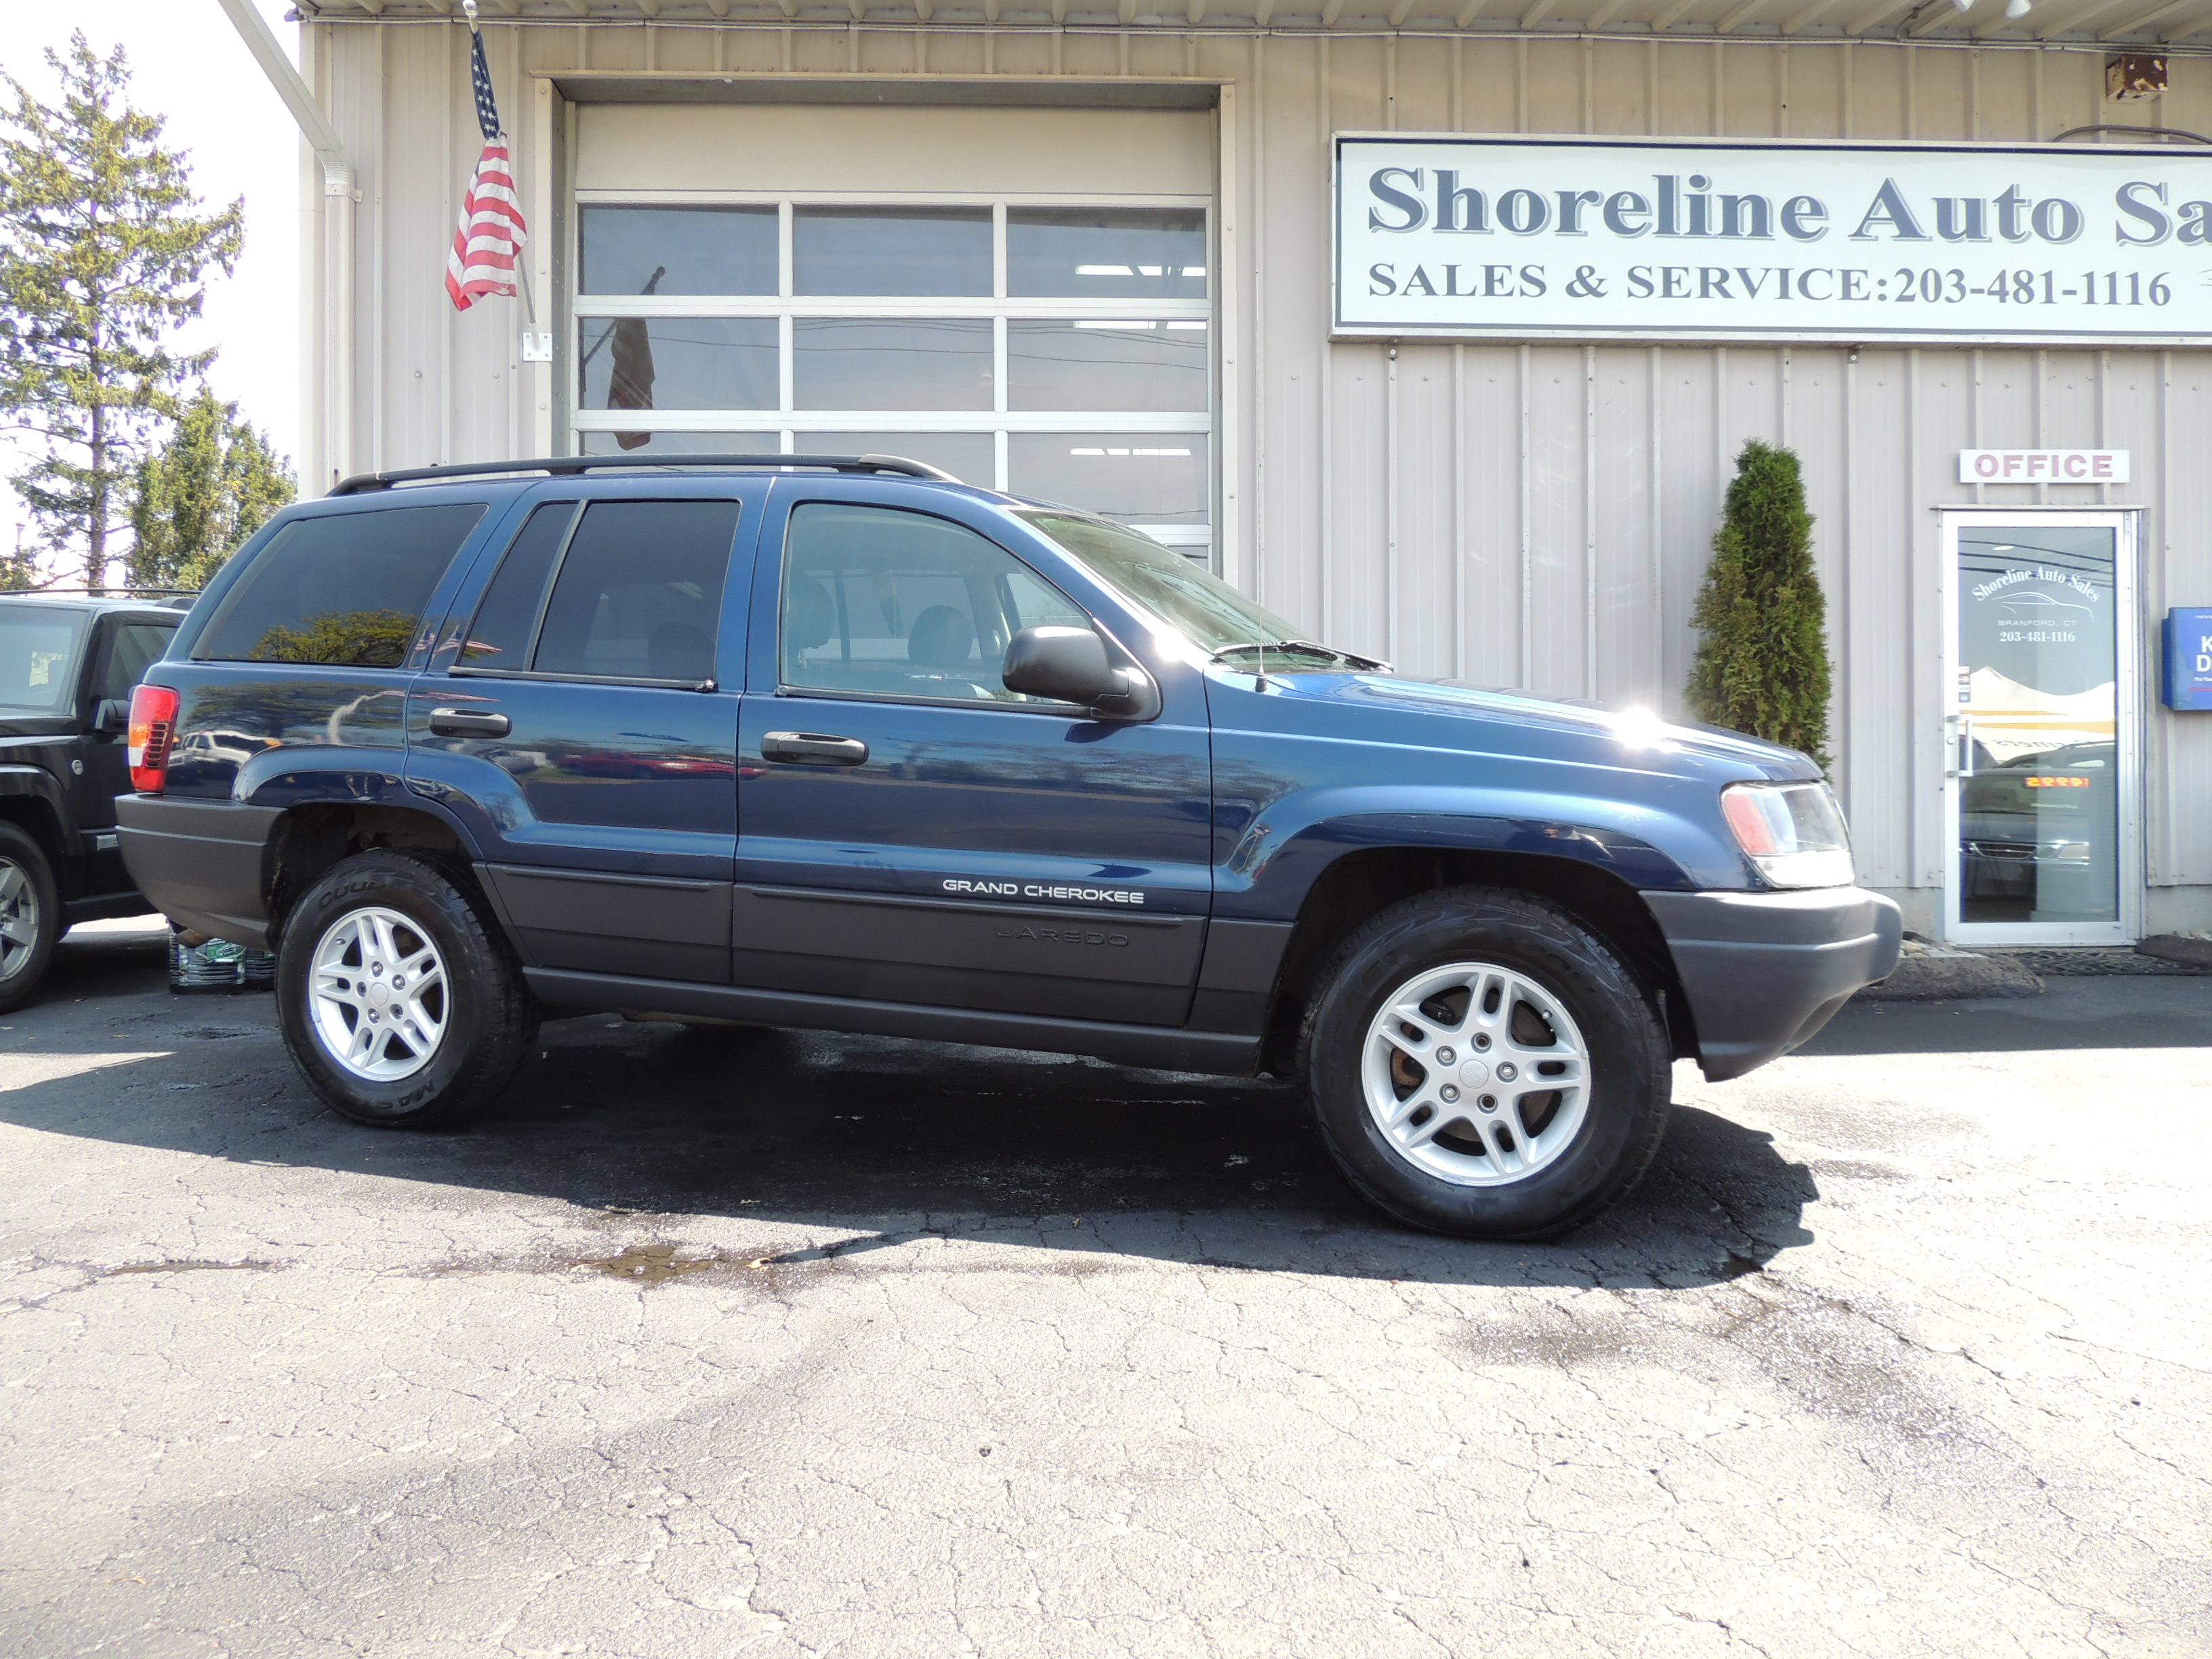 2002 jeep grand cherokee v8 shoreline auto sales. Black Bedroom Furniture Sets. Home Design Ideas